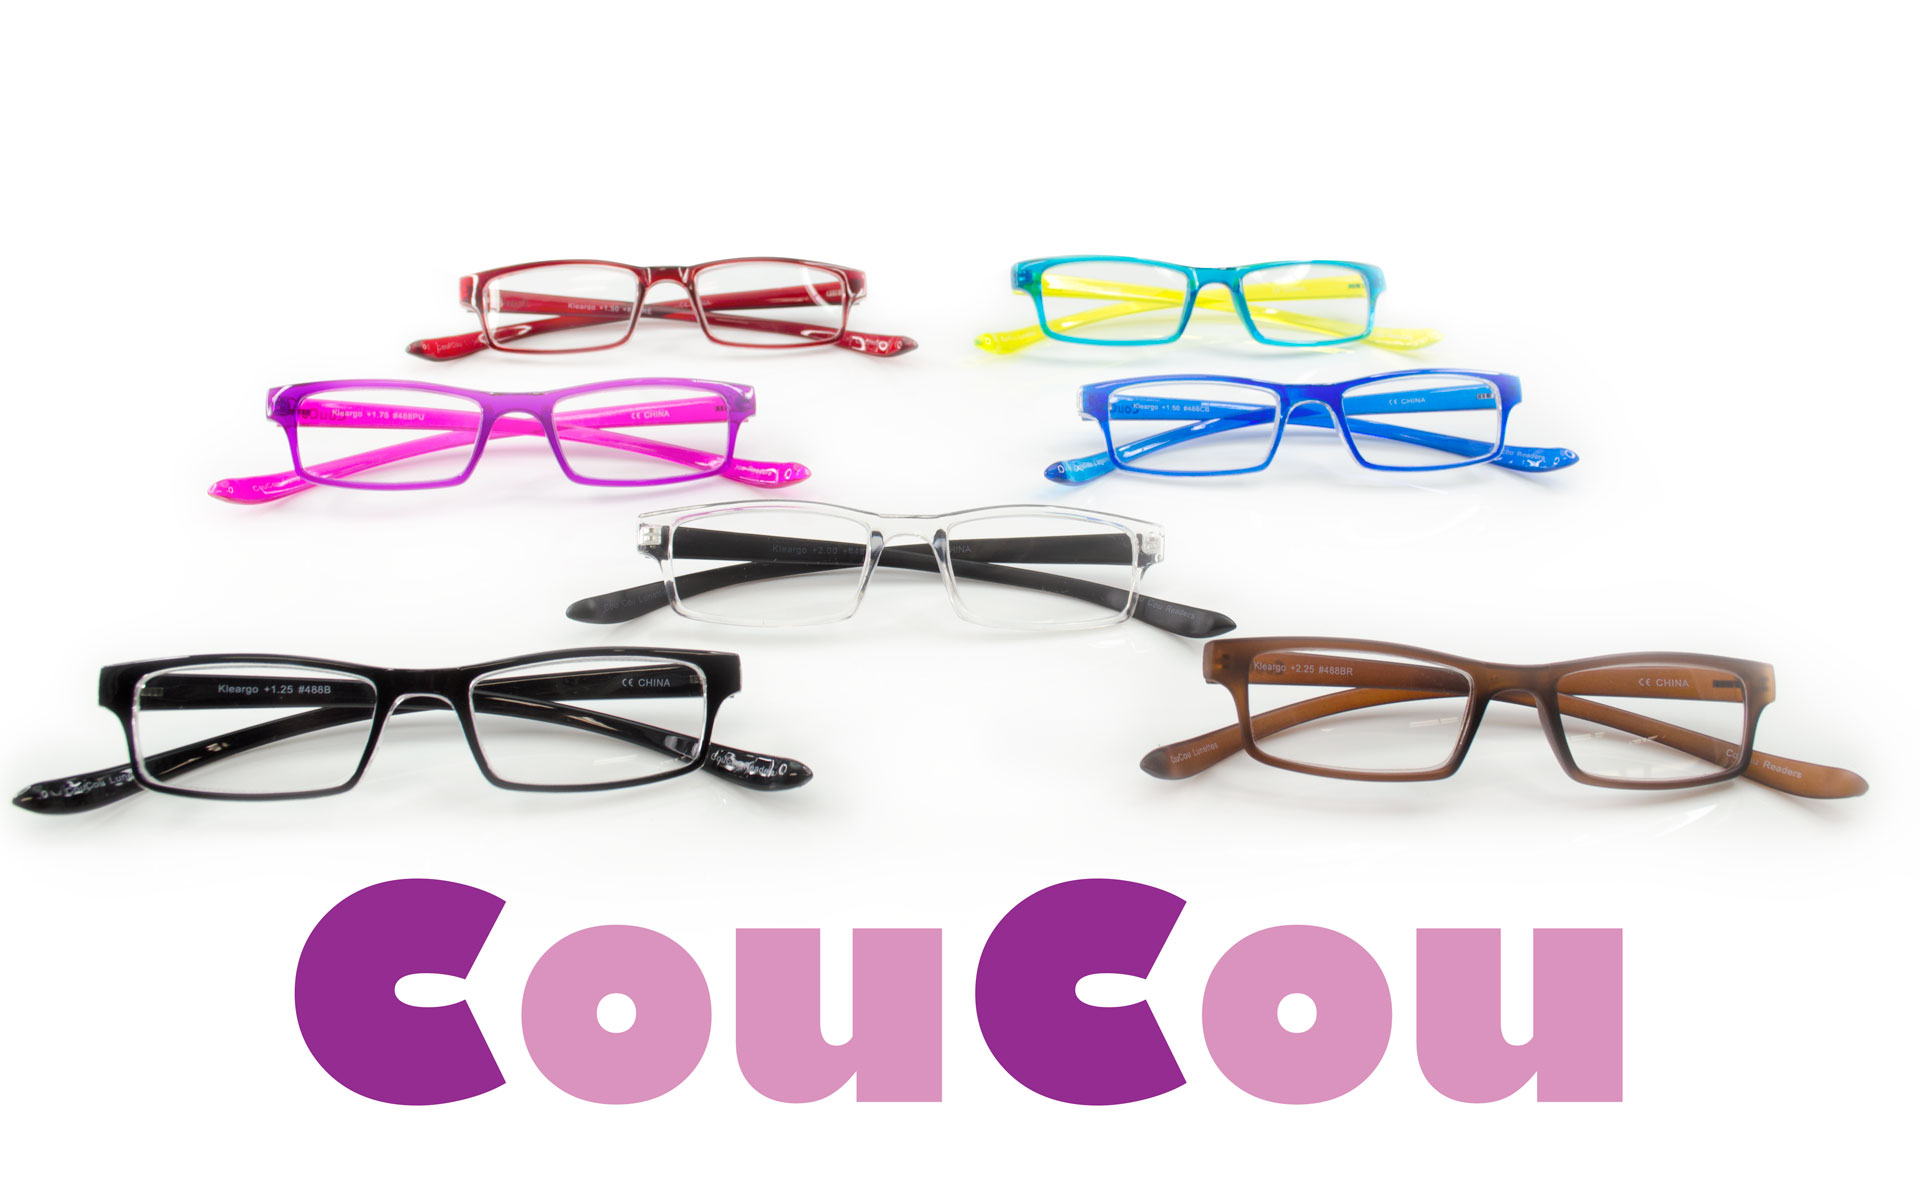 cfff9f5512d The new way ofwearing your readers with CouCou. Light weight   flexible  unisex models available in multiple diopters.